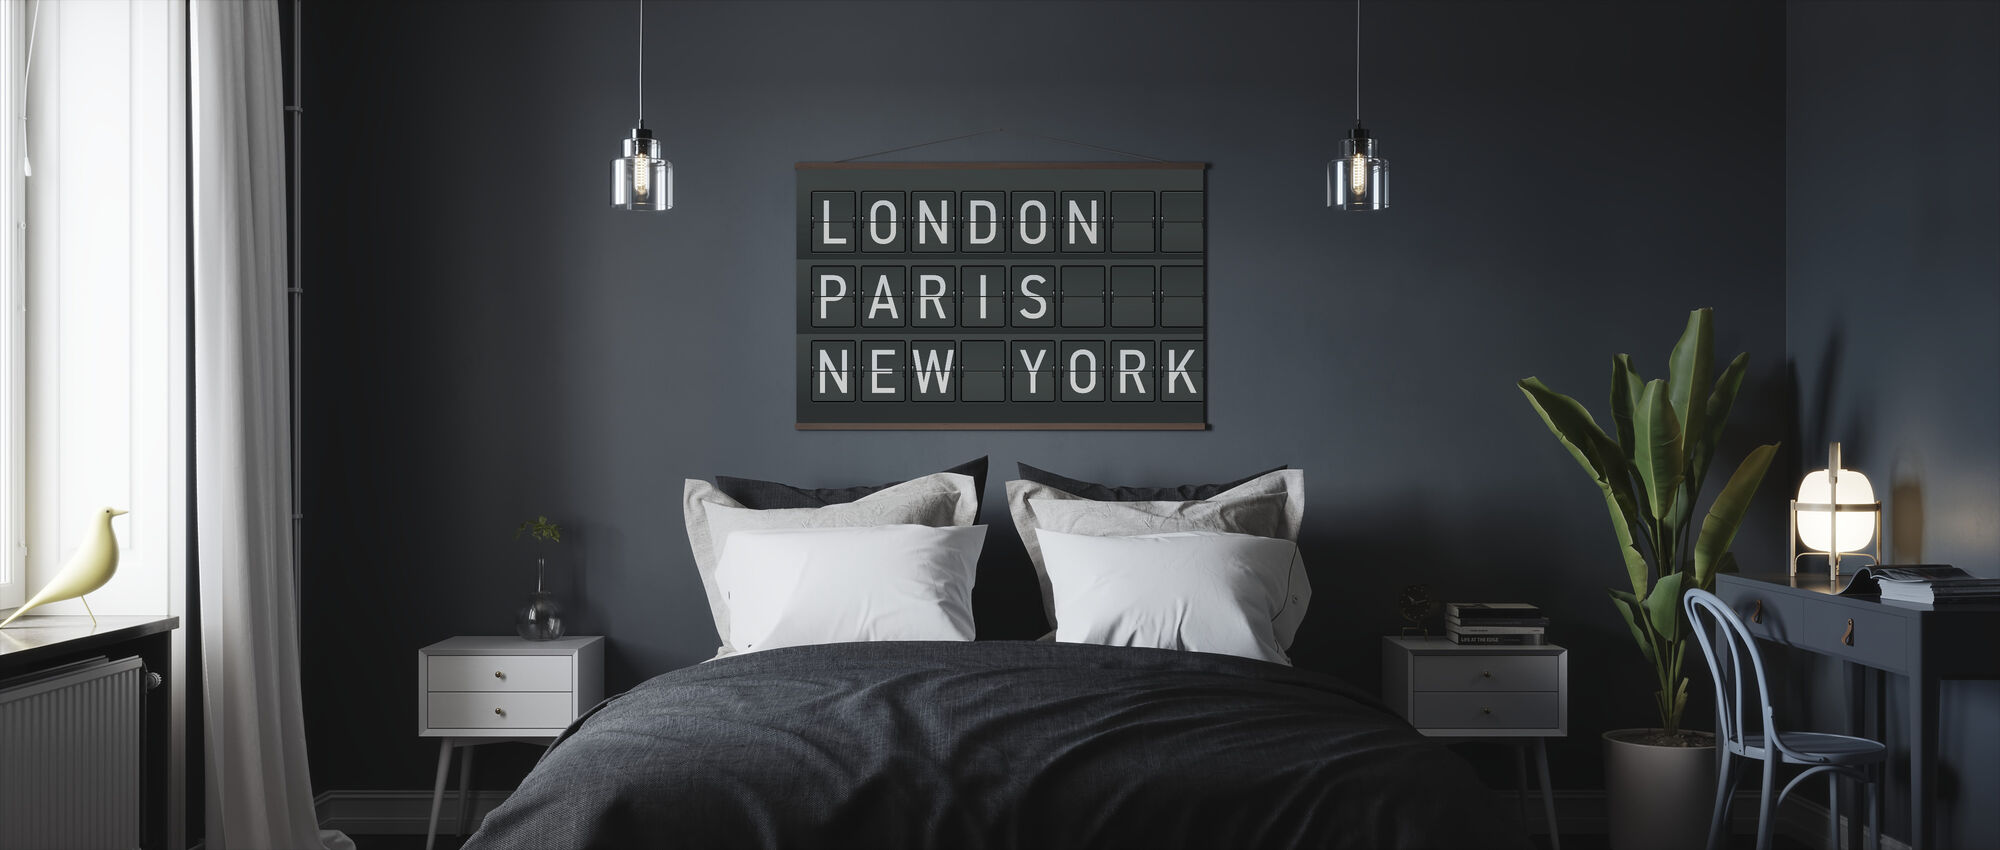 London - Paris - New York - Poster - Bedroom